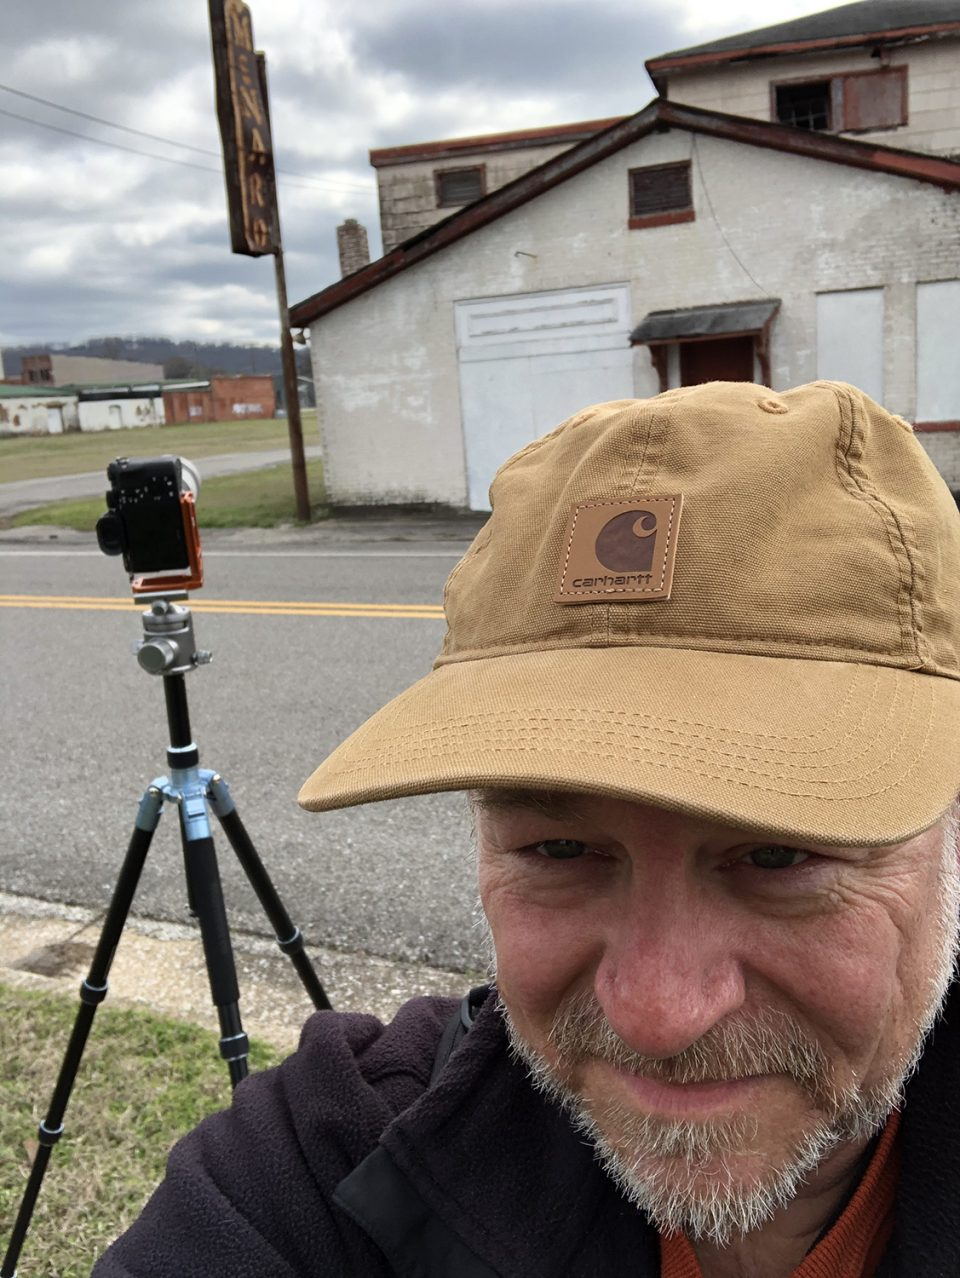 Yours truly, on the site of abandoned buildings in Anniston, Alabama.